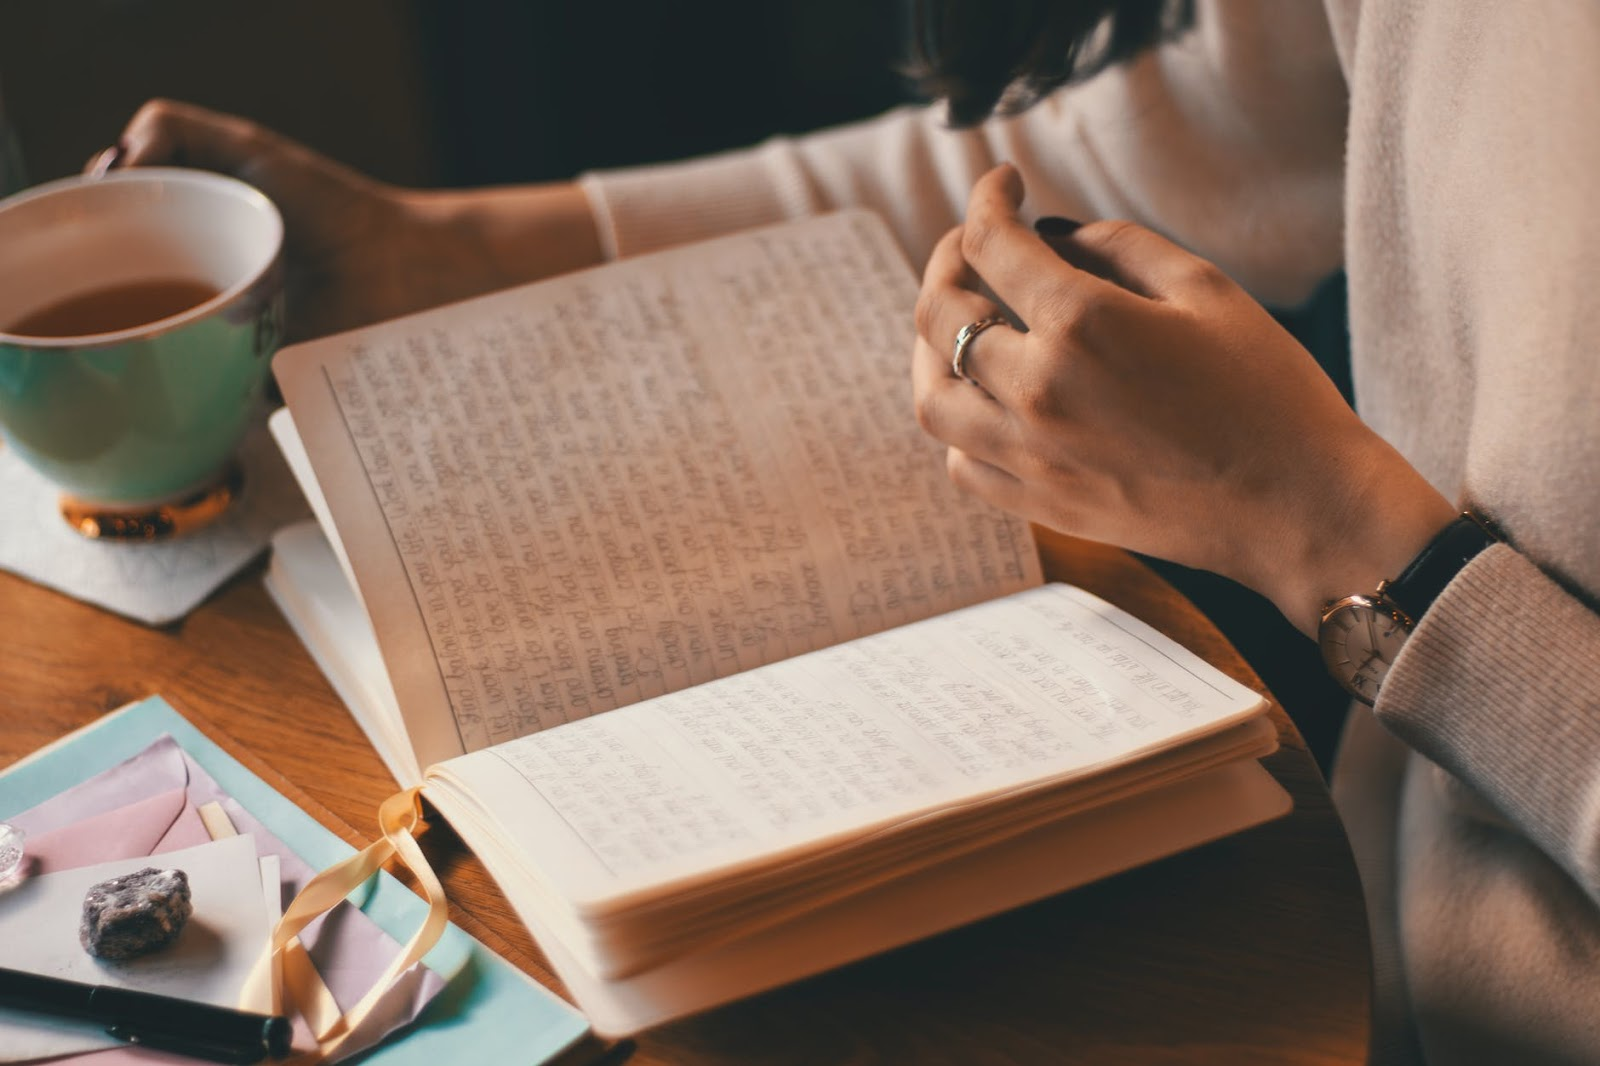 Journaling can be a great way to take something off your mind